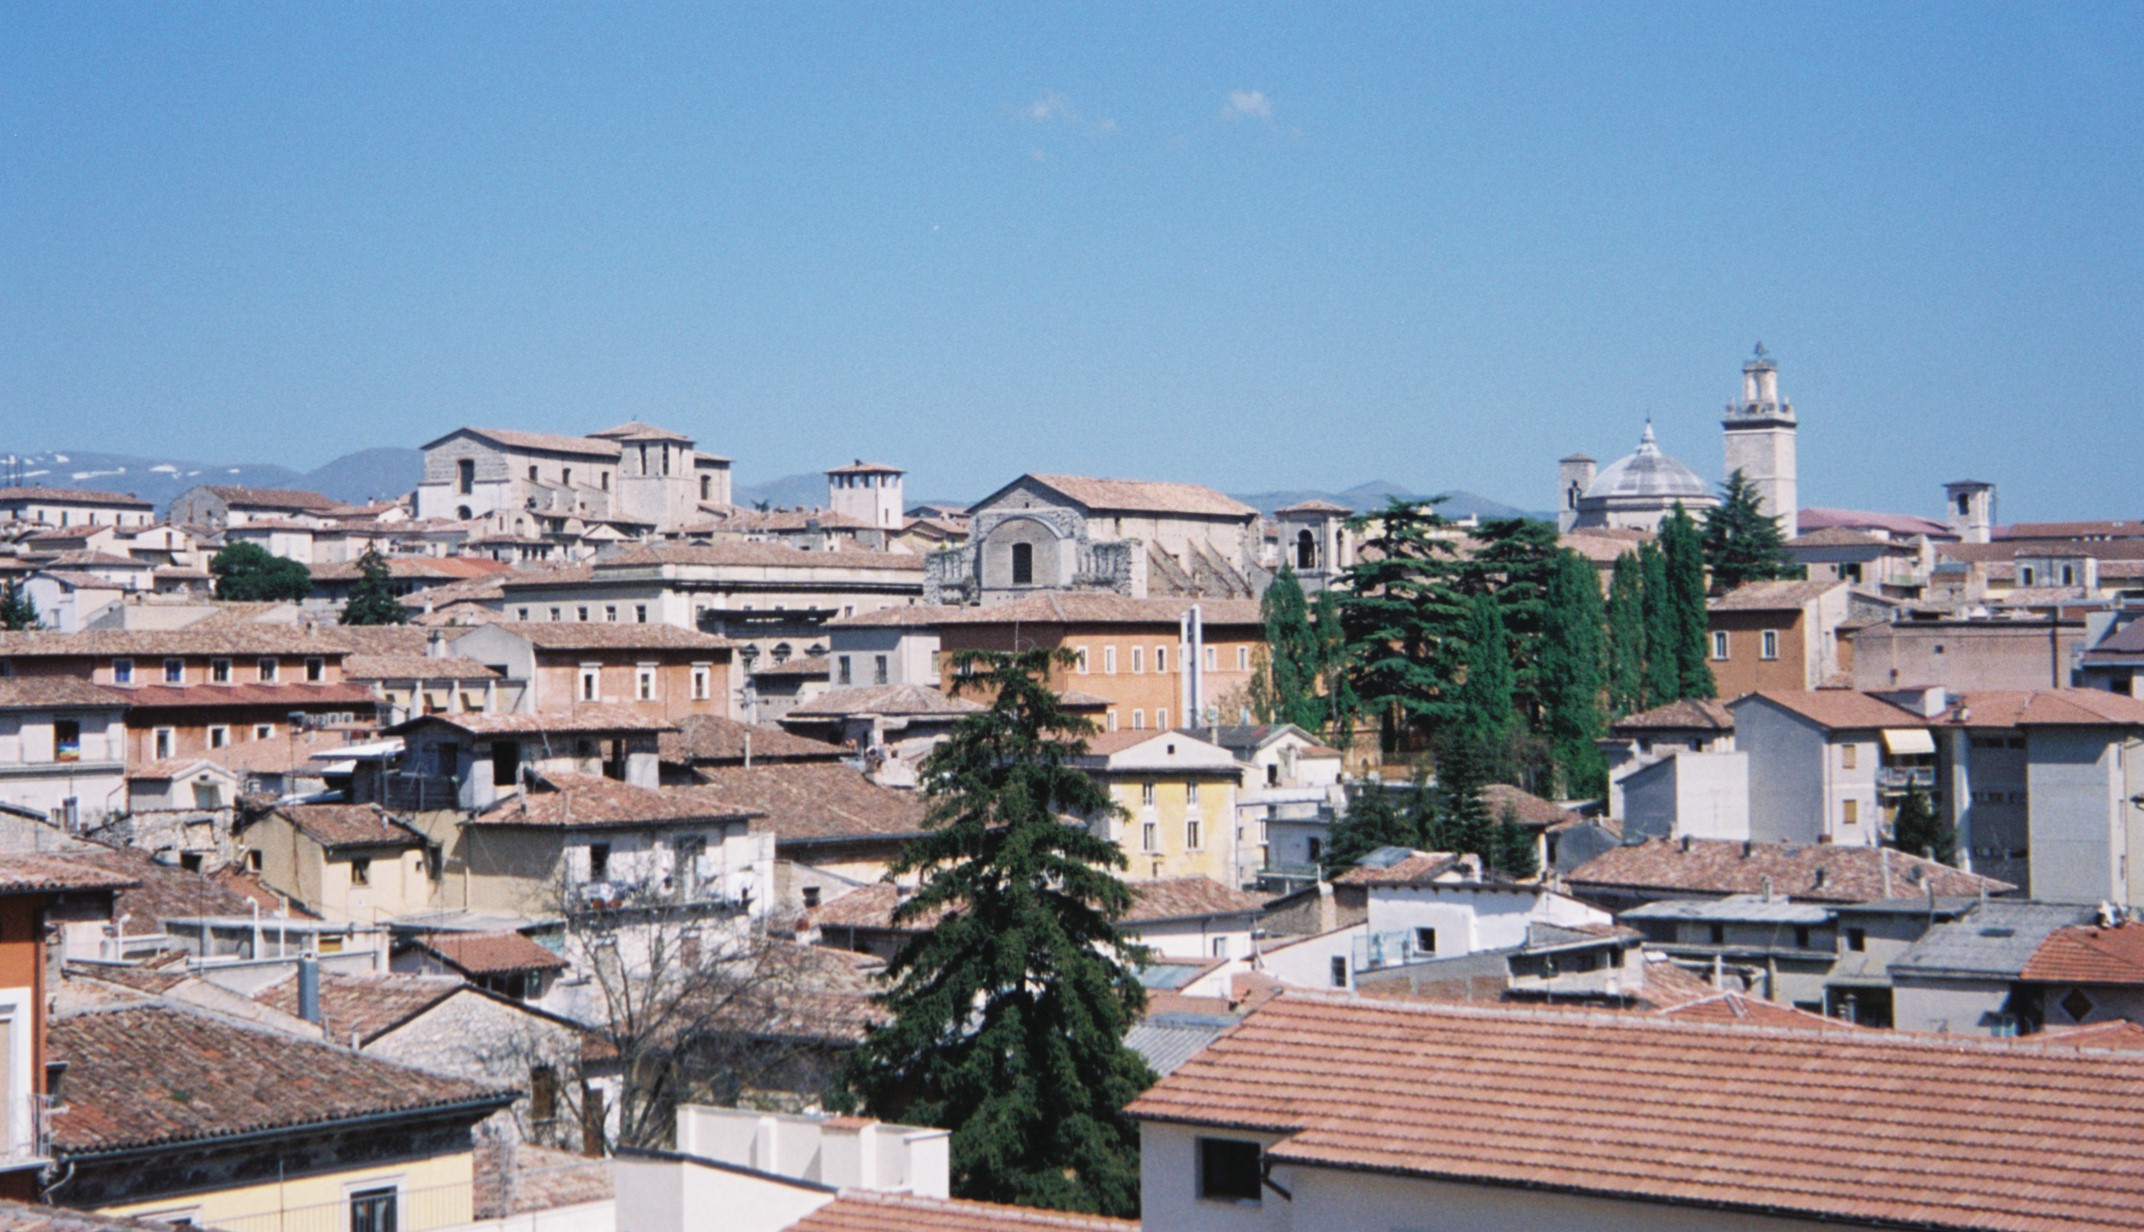 Pictures Of L Aquila Italy In 2003